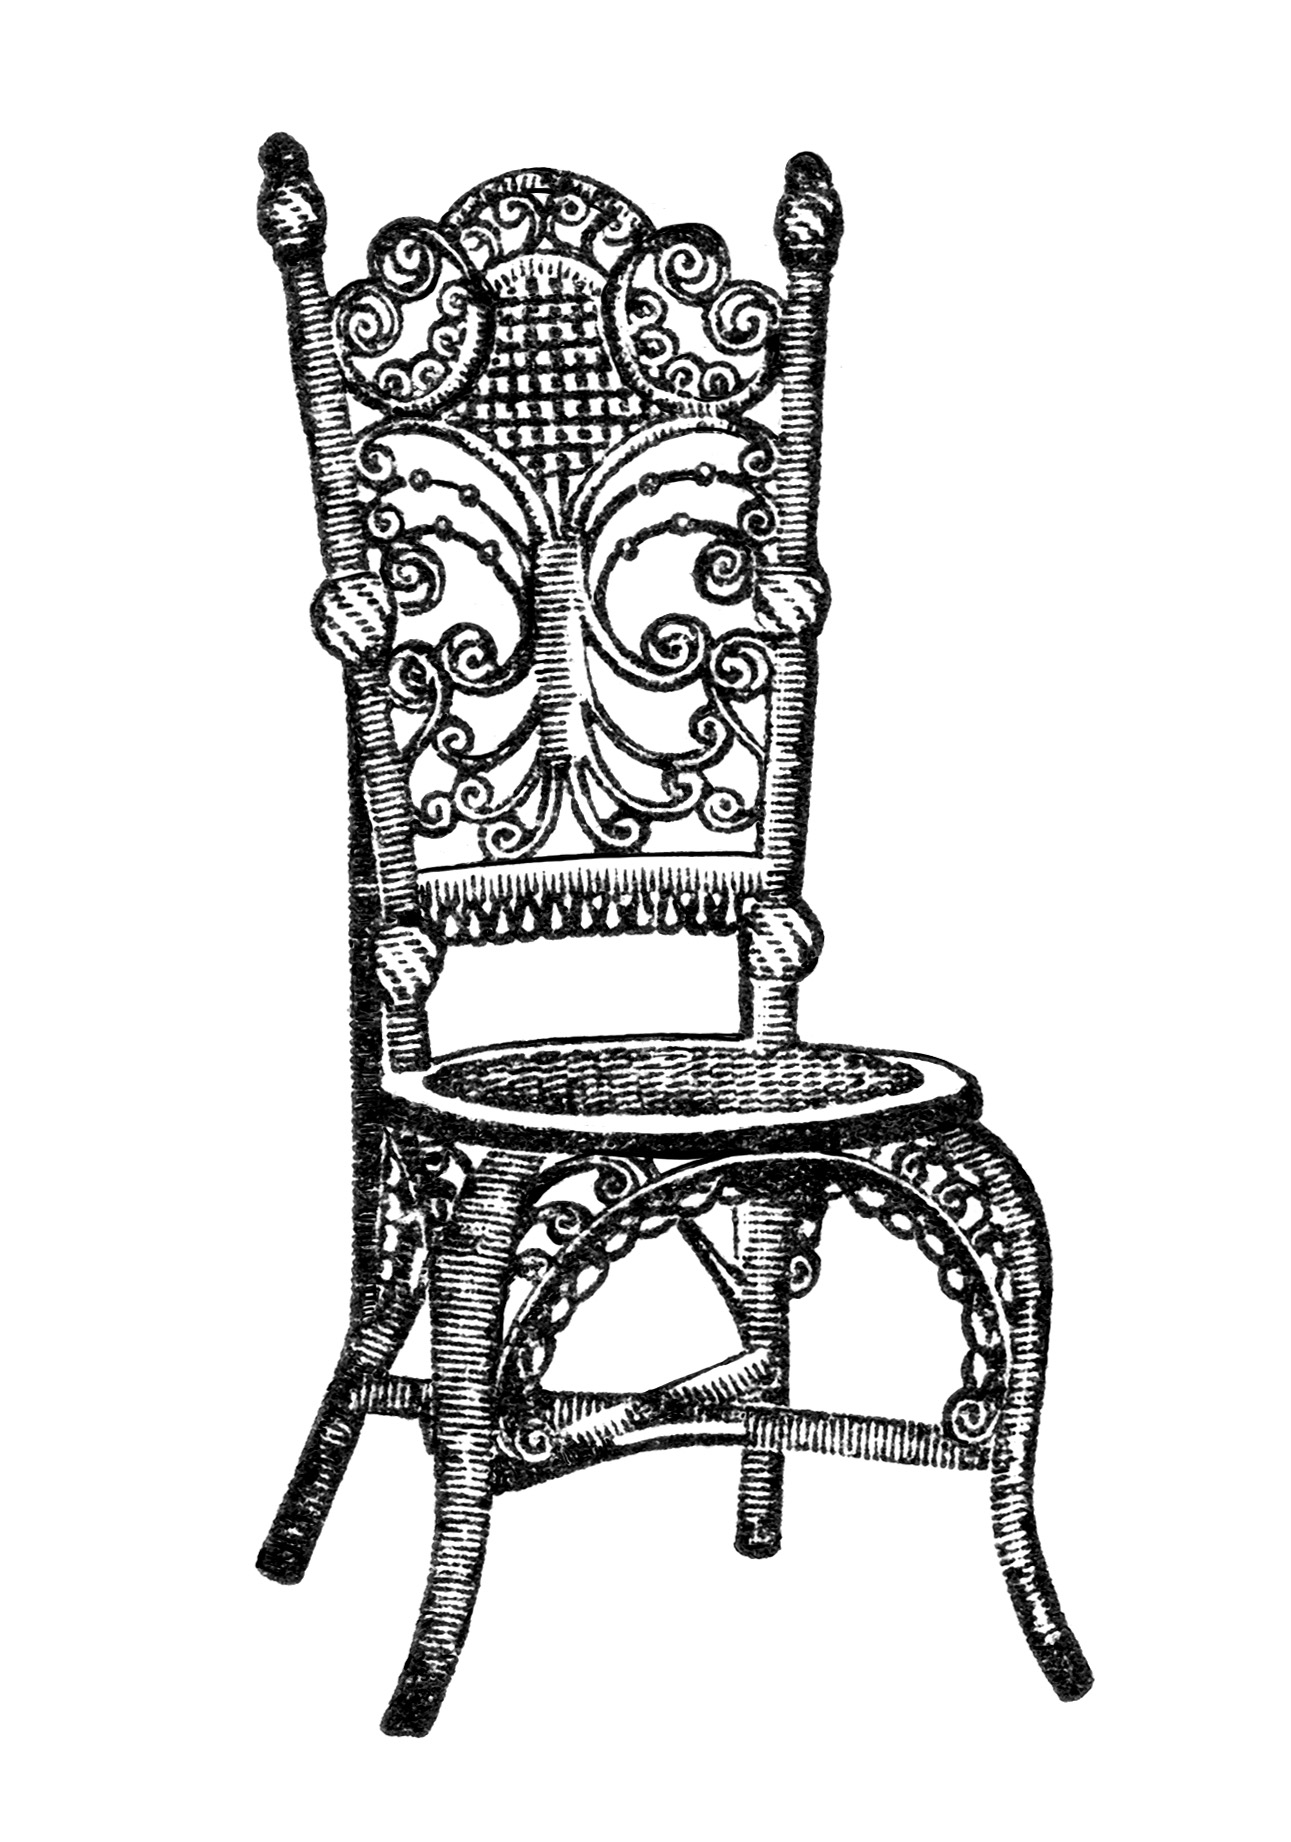 ... chair image, black and white clip art, printable furniture graphics